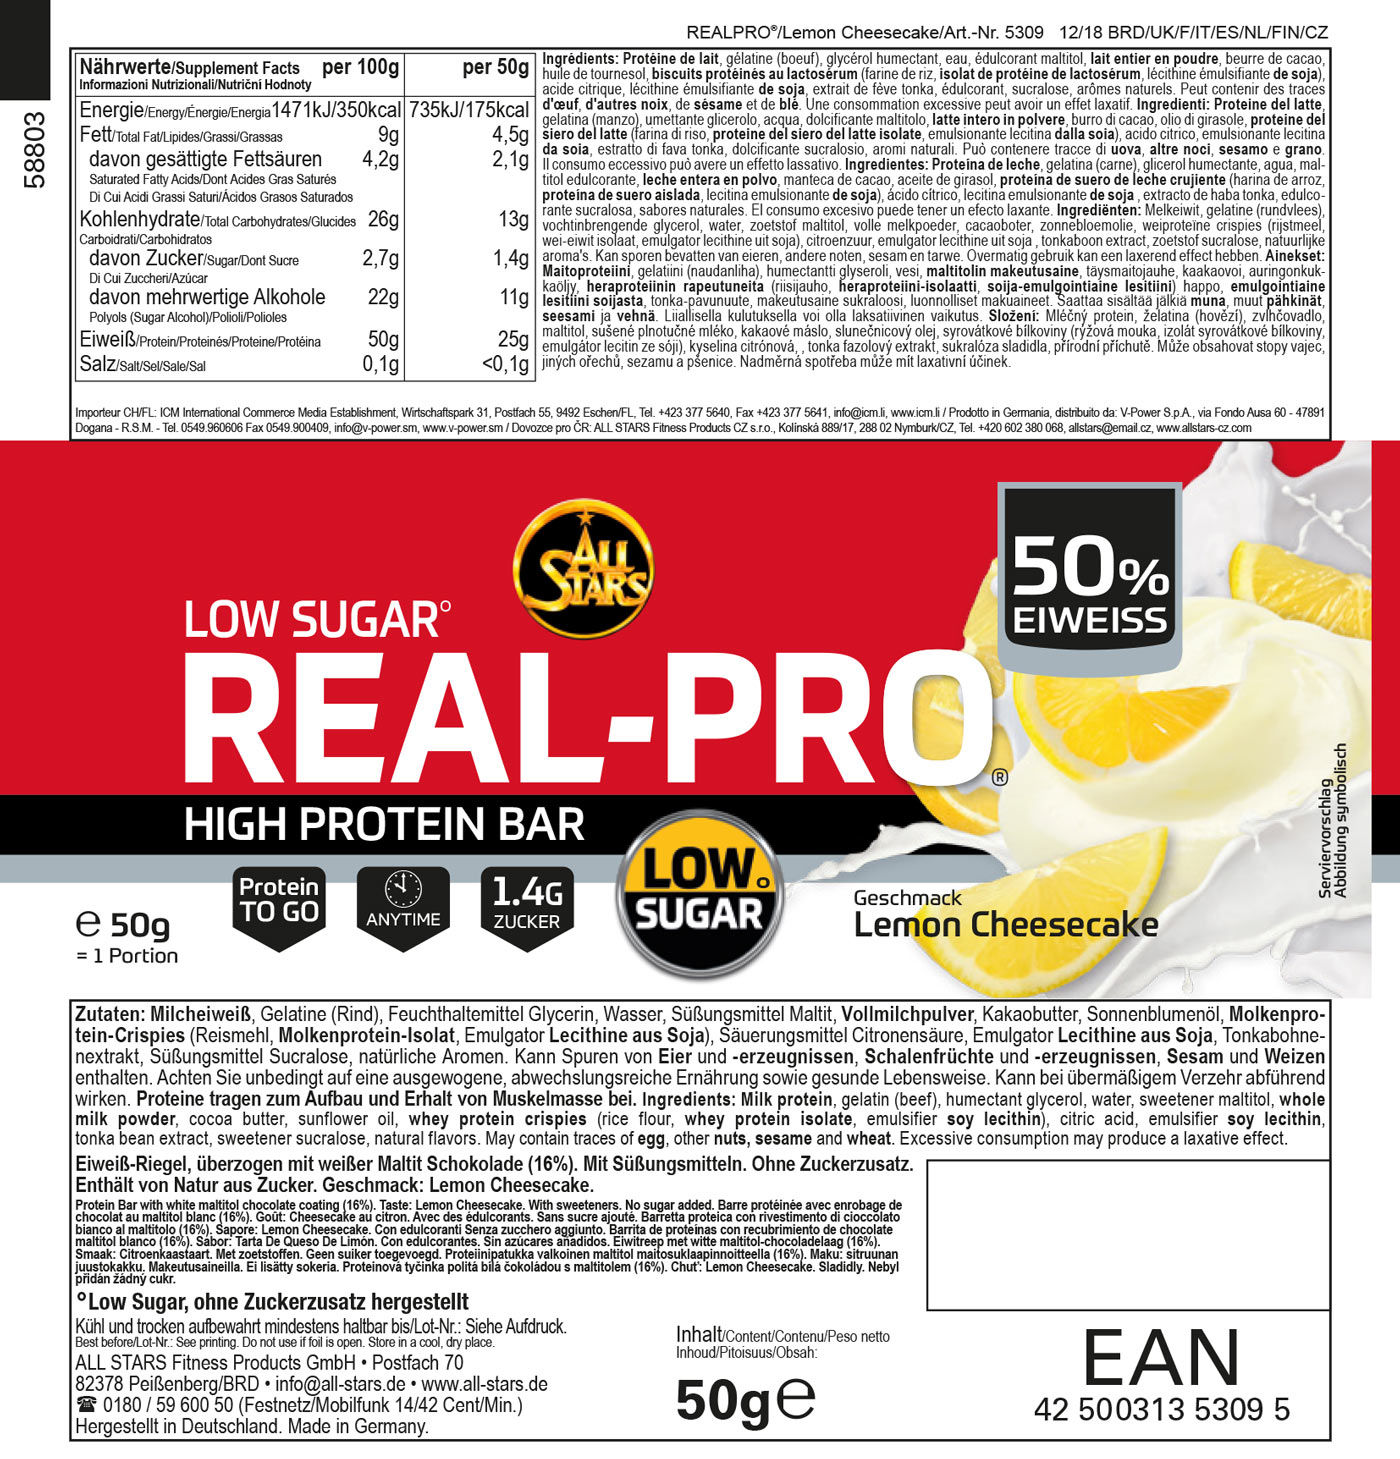 RealPro_Lemon-Cheesecake